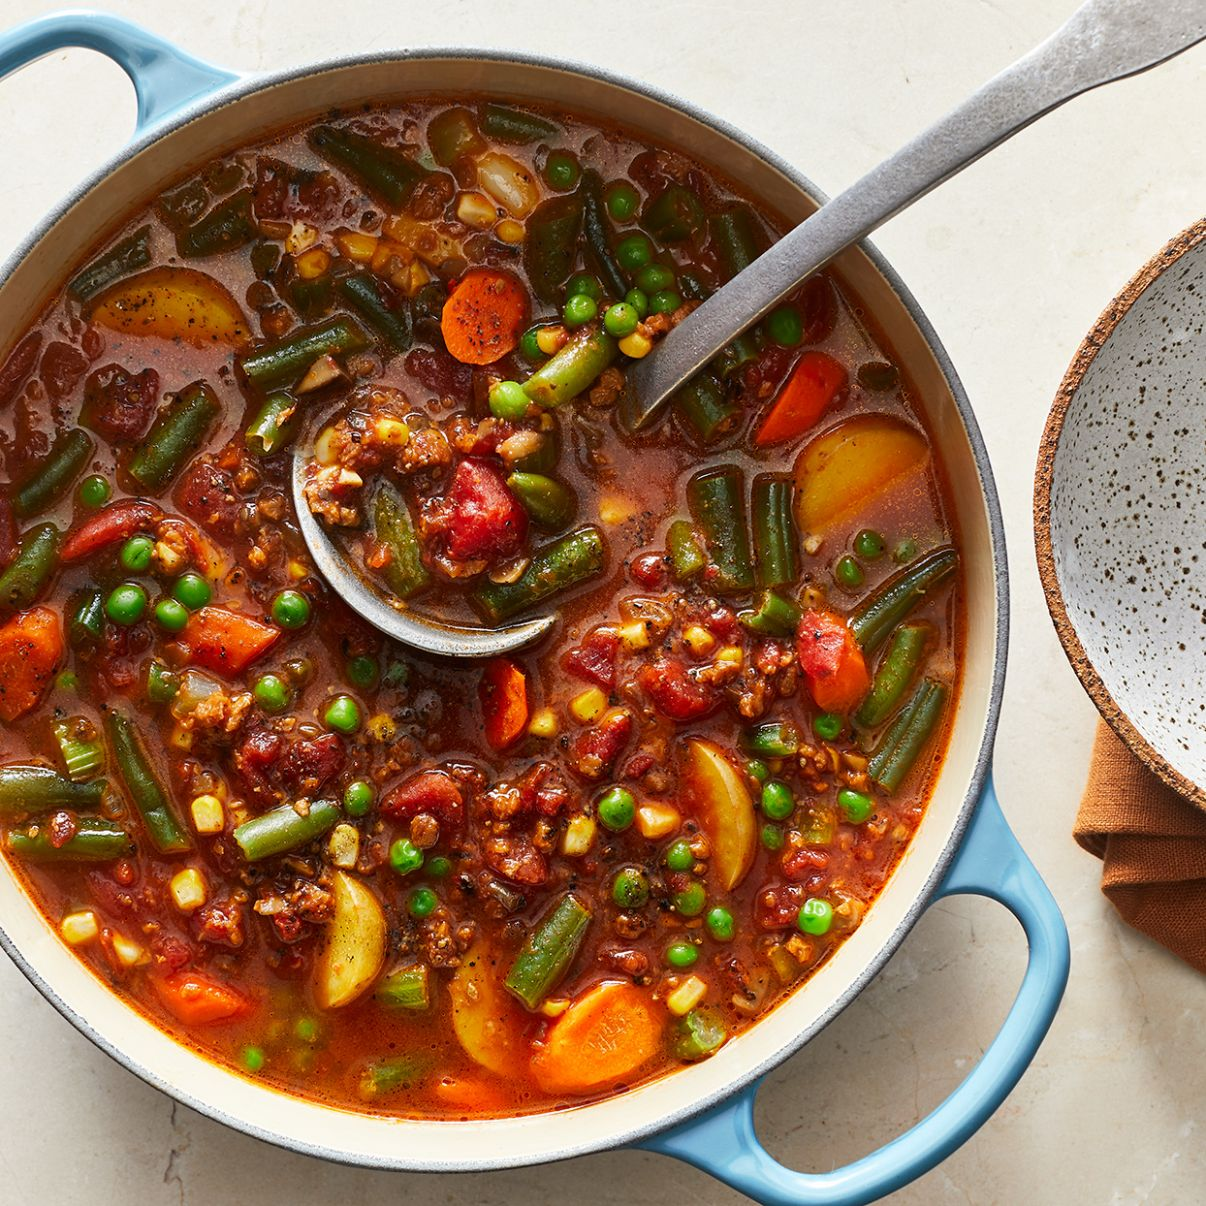 Clean-Out-the-Fridge Vegetable Stew - Recipes Vegetable Stew